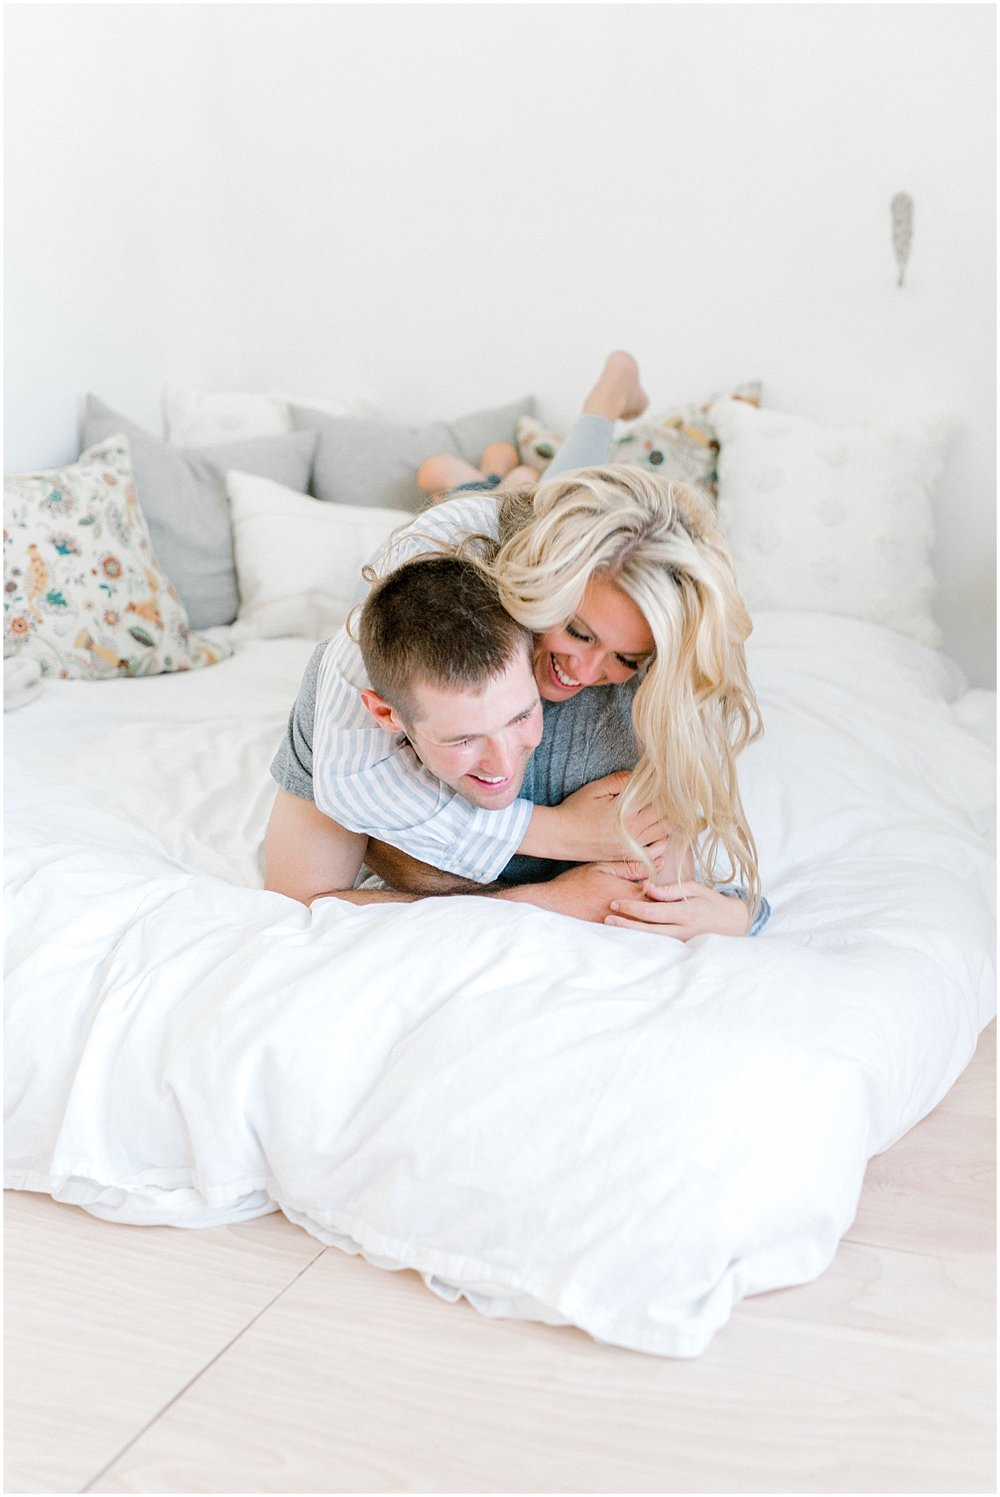 Emma Rose Company Family Pictures, What to Wear to Family Portraits, Lora Grady Photography, Seattle Portrait and Wedding Photographer, Intimate Couples Session on Bed1